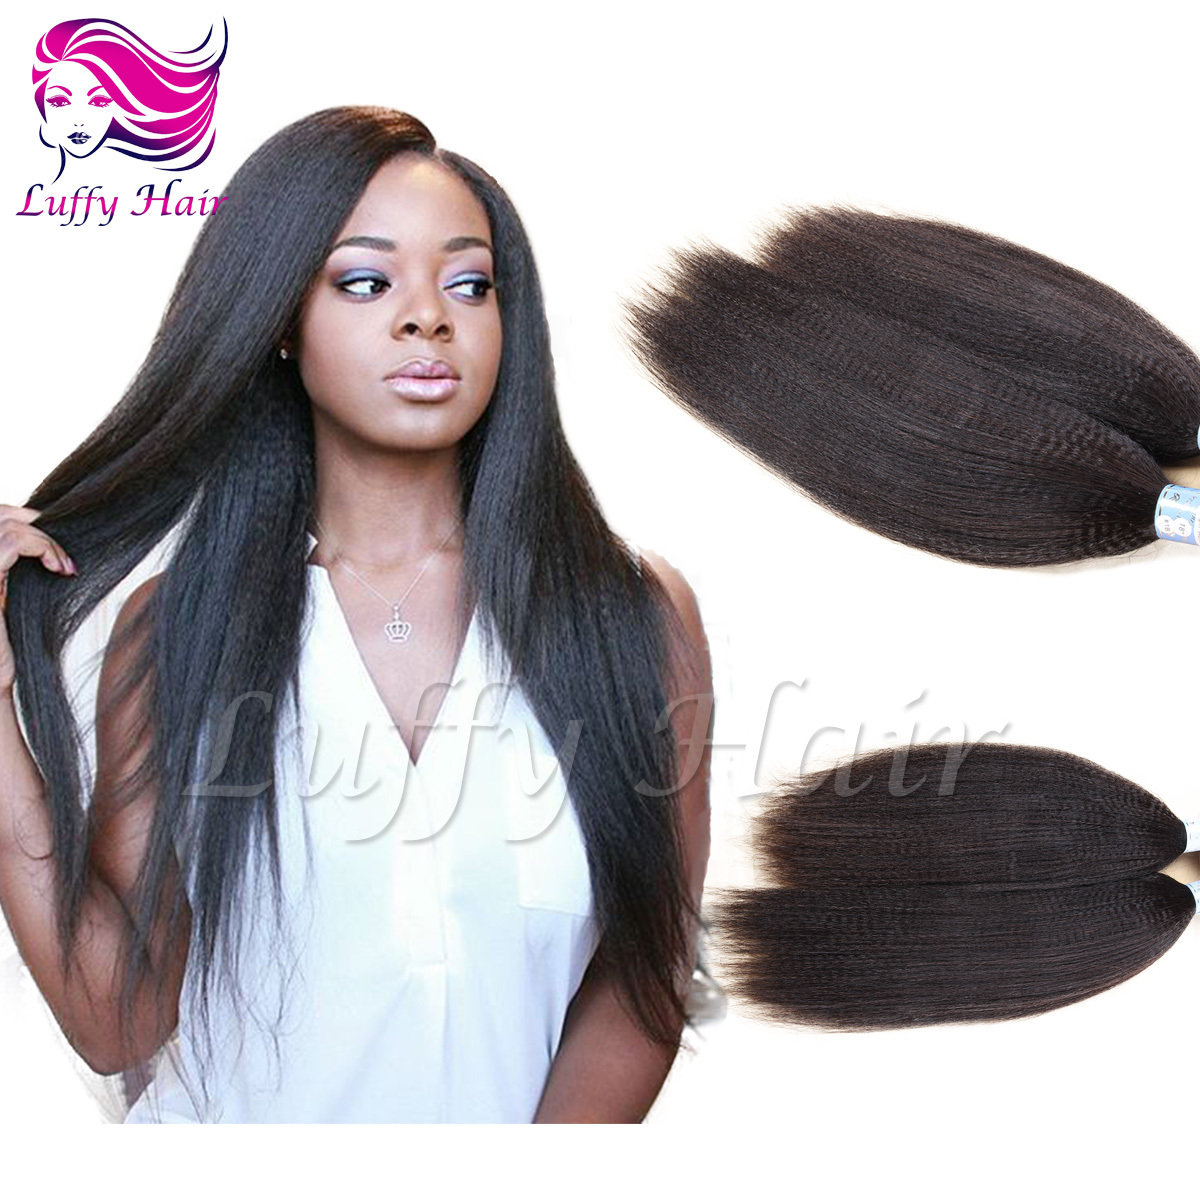 8A Virgin Human Hair Italian Yaki Straight Micro Loop Ring Hair Extensions - KML013